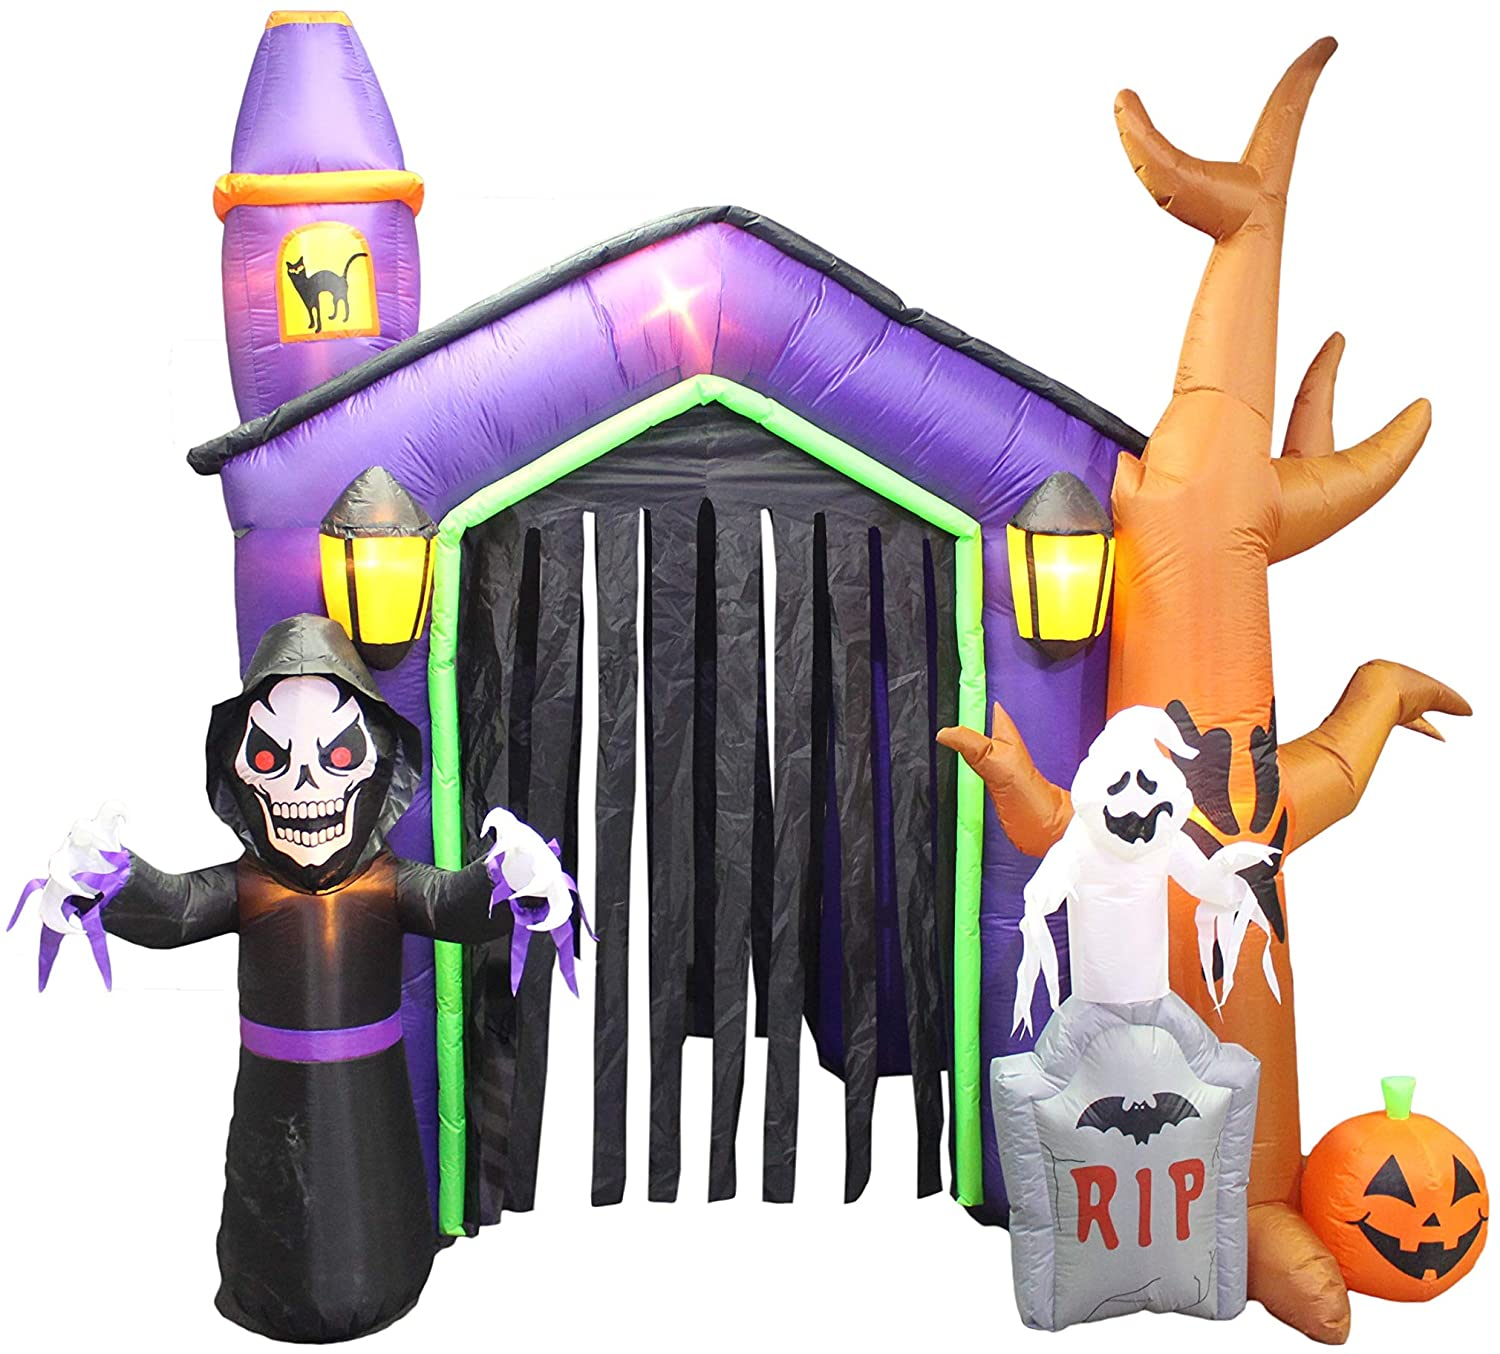 8.5 Foot Halloween Inflatable Haunted House Castle with Skeleton, Ghost, Tree and Pumpkin Lights Decor Outdoor